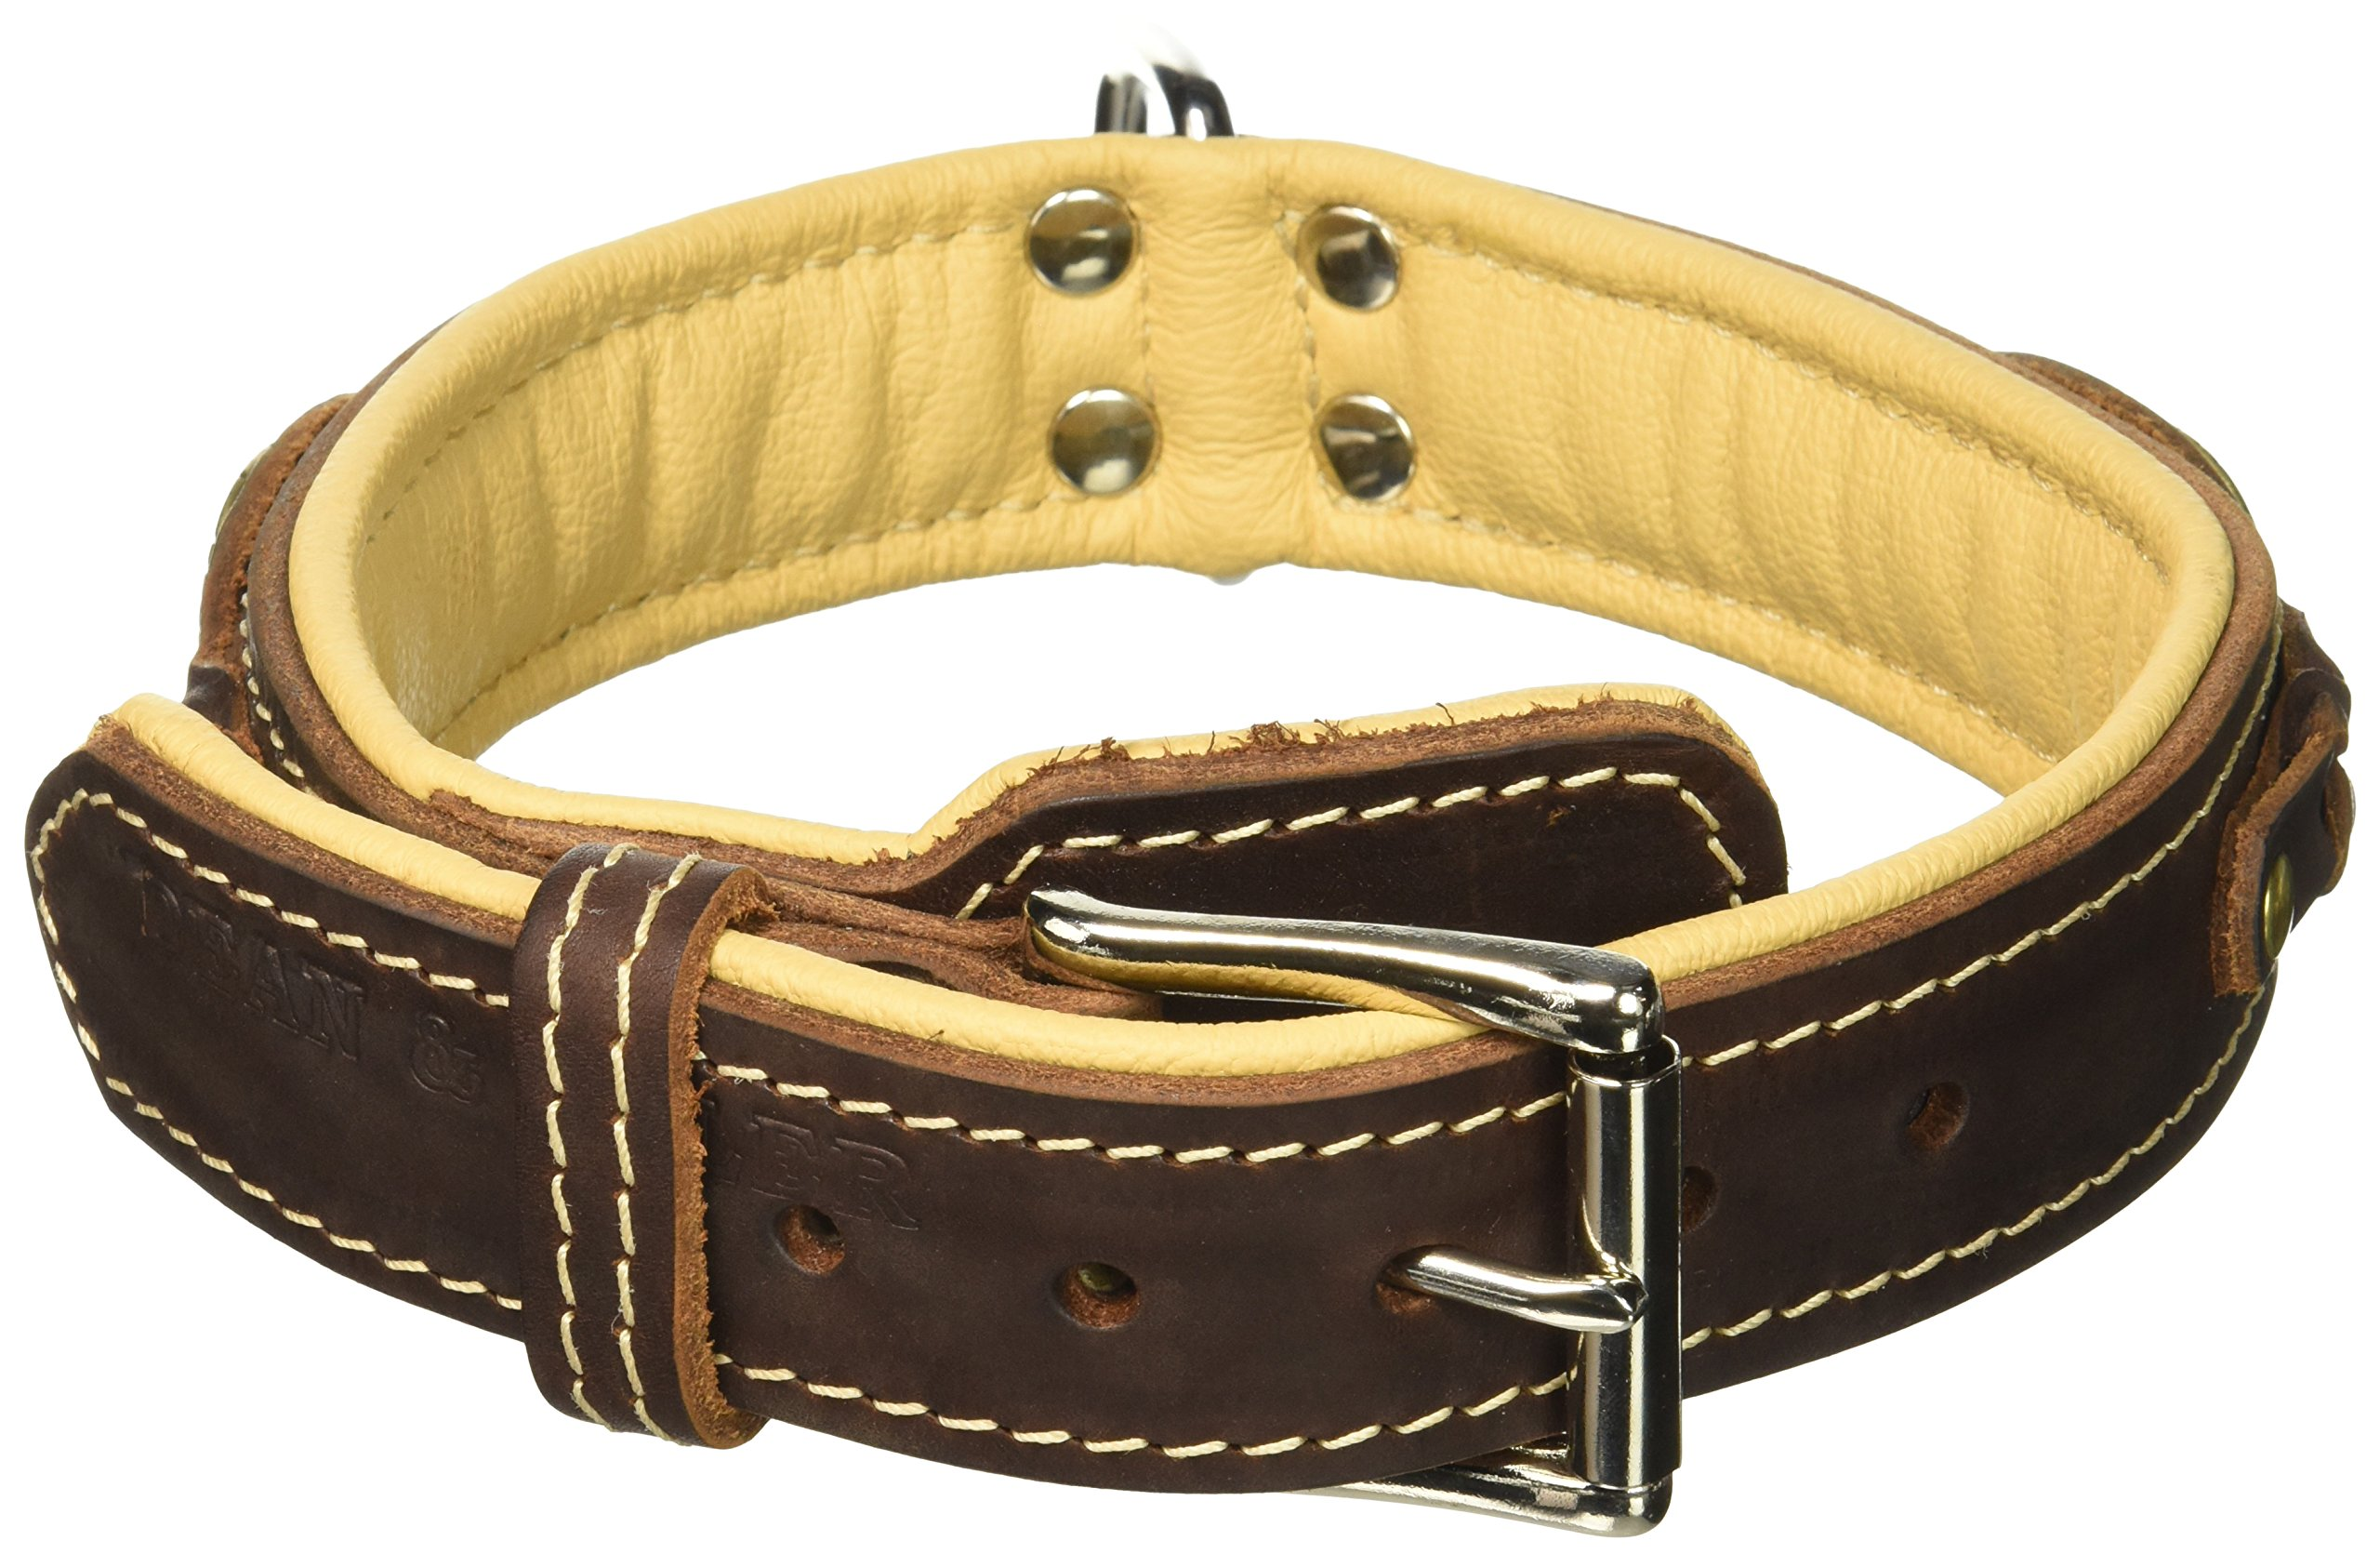 Dean & Tyler Dean's Legend Dog Collar with Brown Padding and Chrome Plated Steel Hardware, 20 by 1-1/2-Inch, Brown